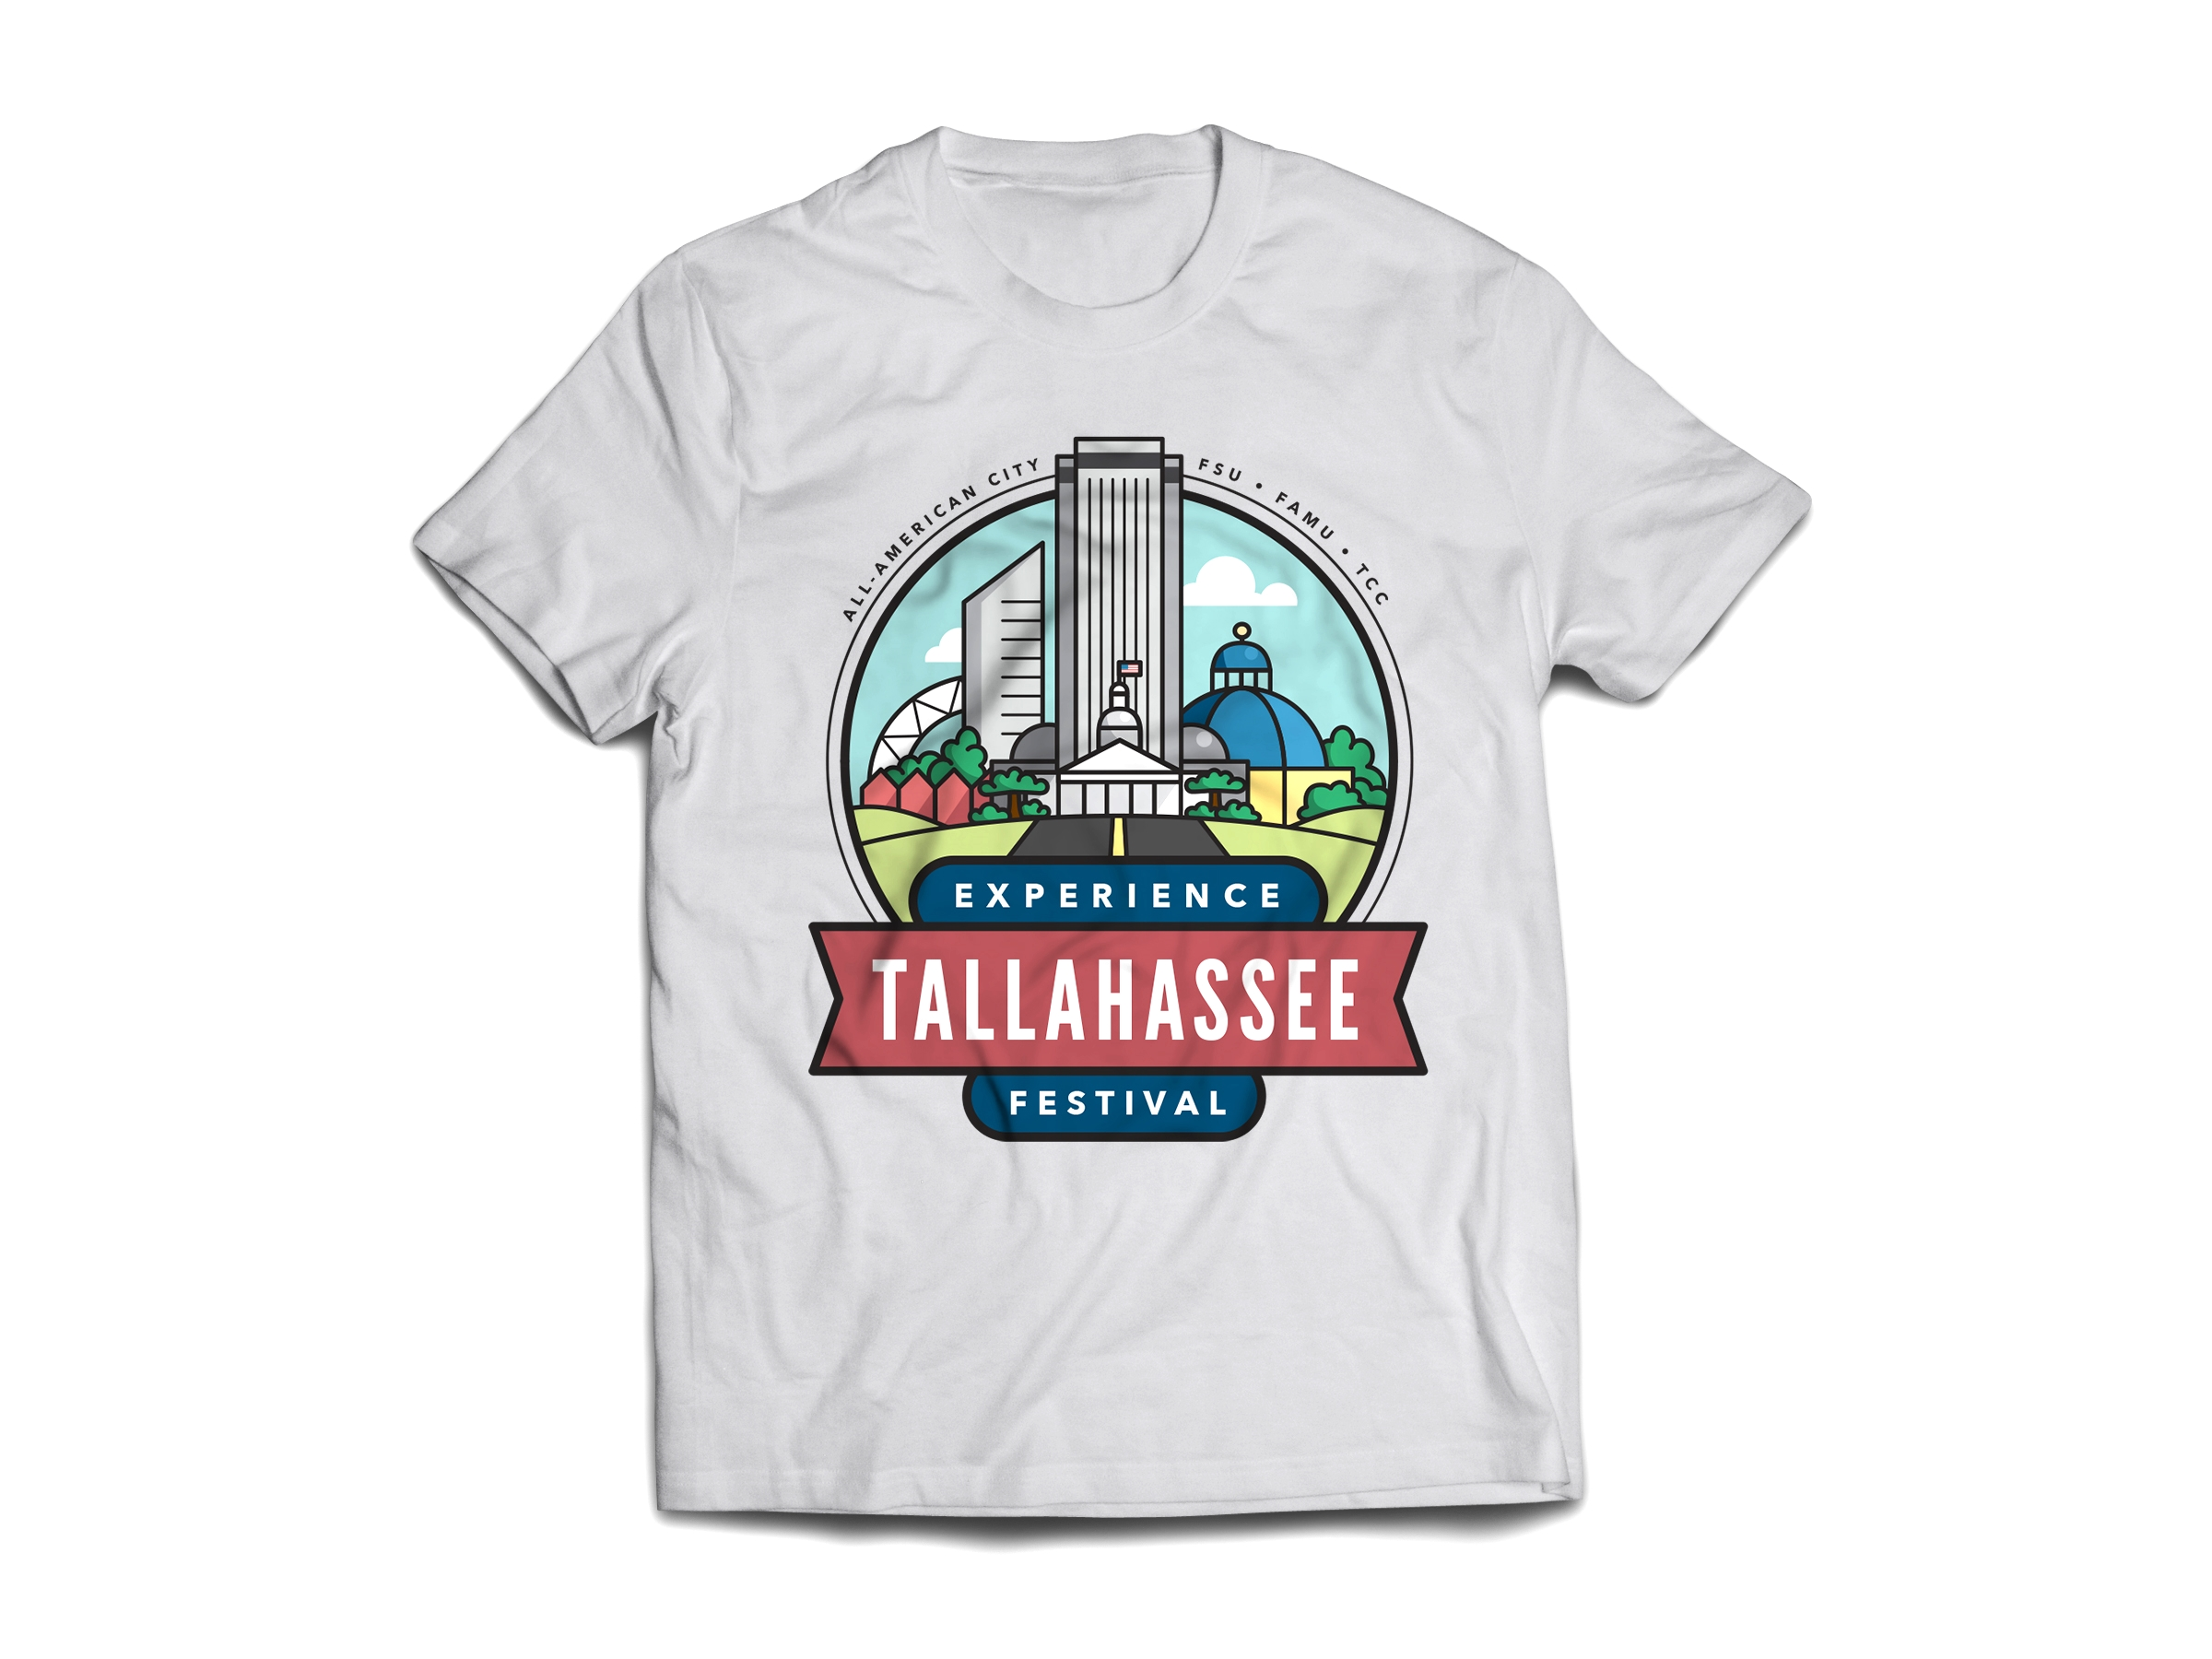 Experience Tallahassee - T-shirt